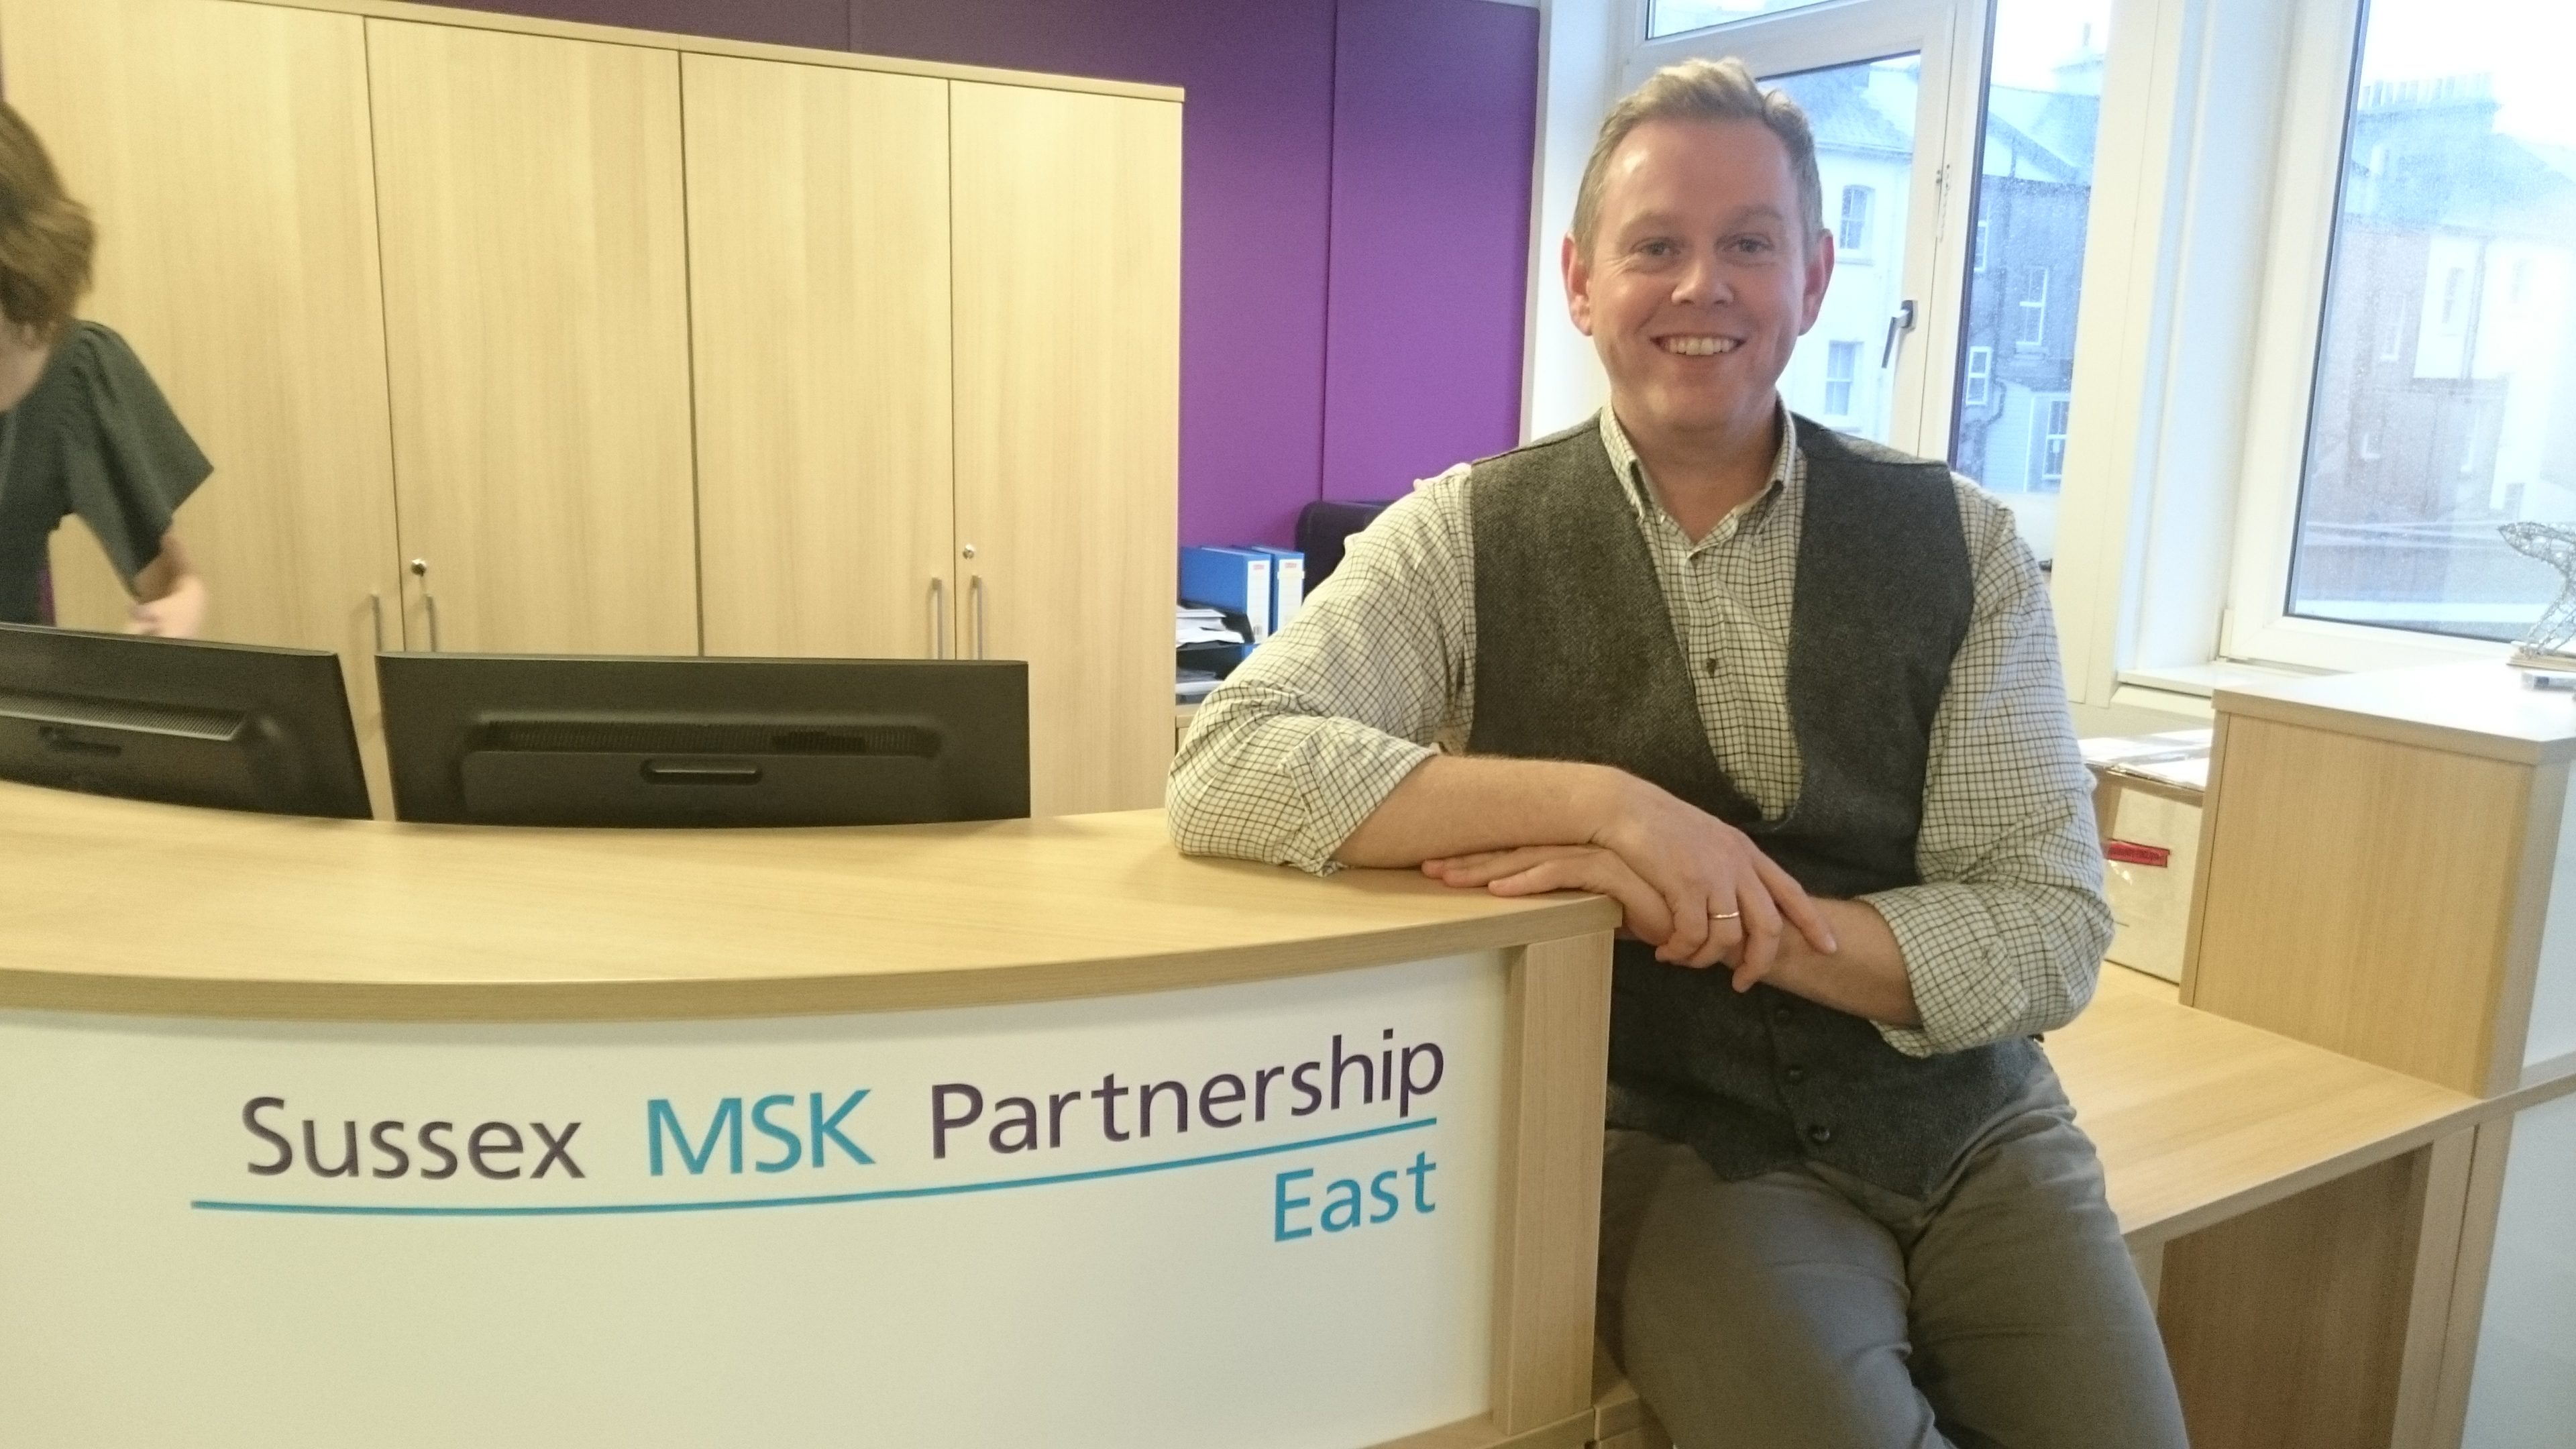 New Consultant Leads Rheumatology Service Development at Sussex MSK Partnership East